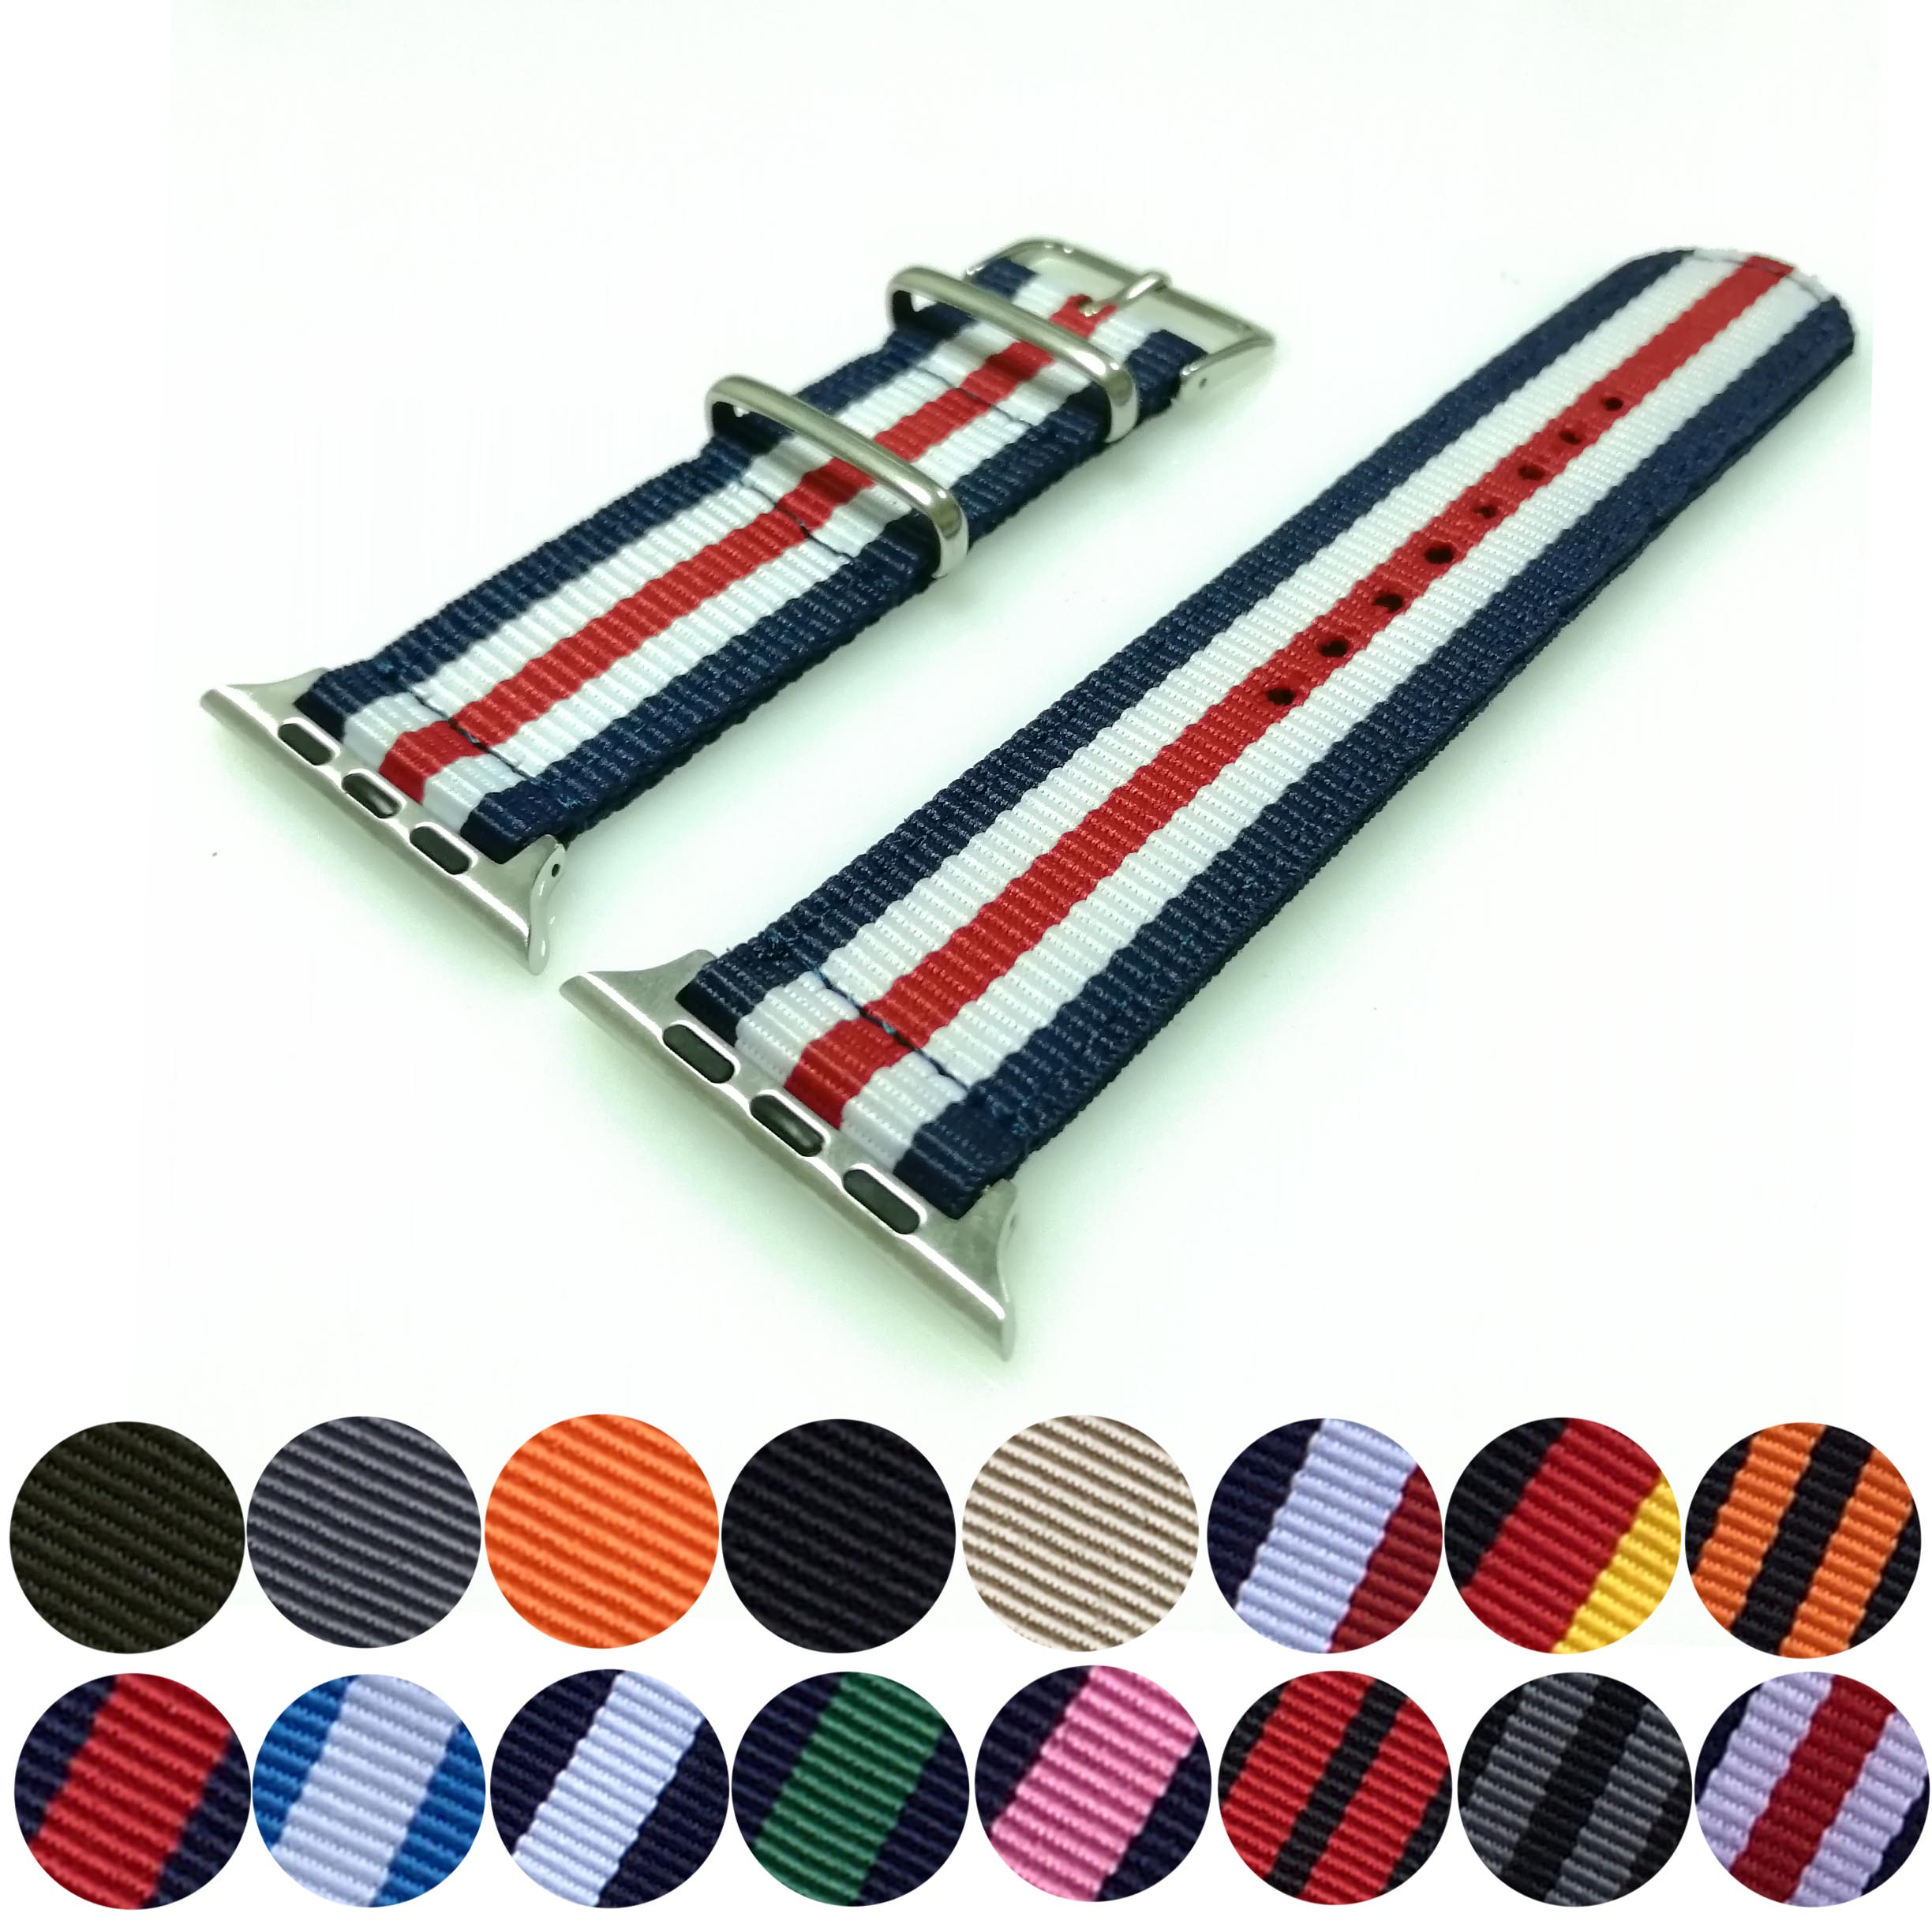 Watch Band For Apple Watch 38mm 40mm Nato Nylon Watchband For IWatch 5 4 3 2 1 Watch Strap 42mm 44mm Wrist Bracelet